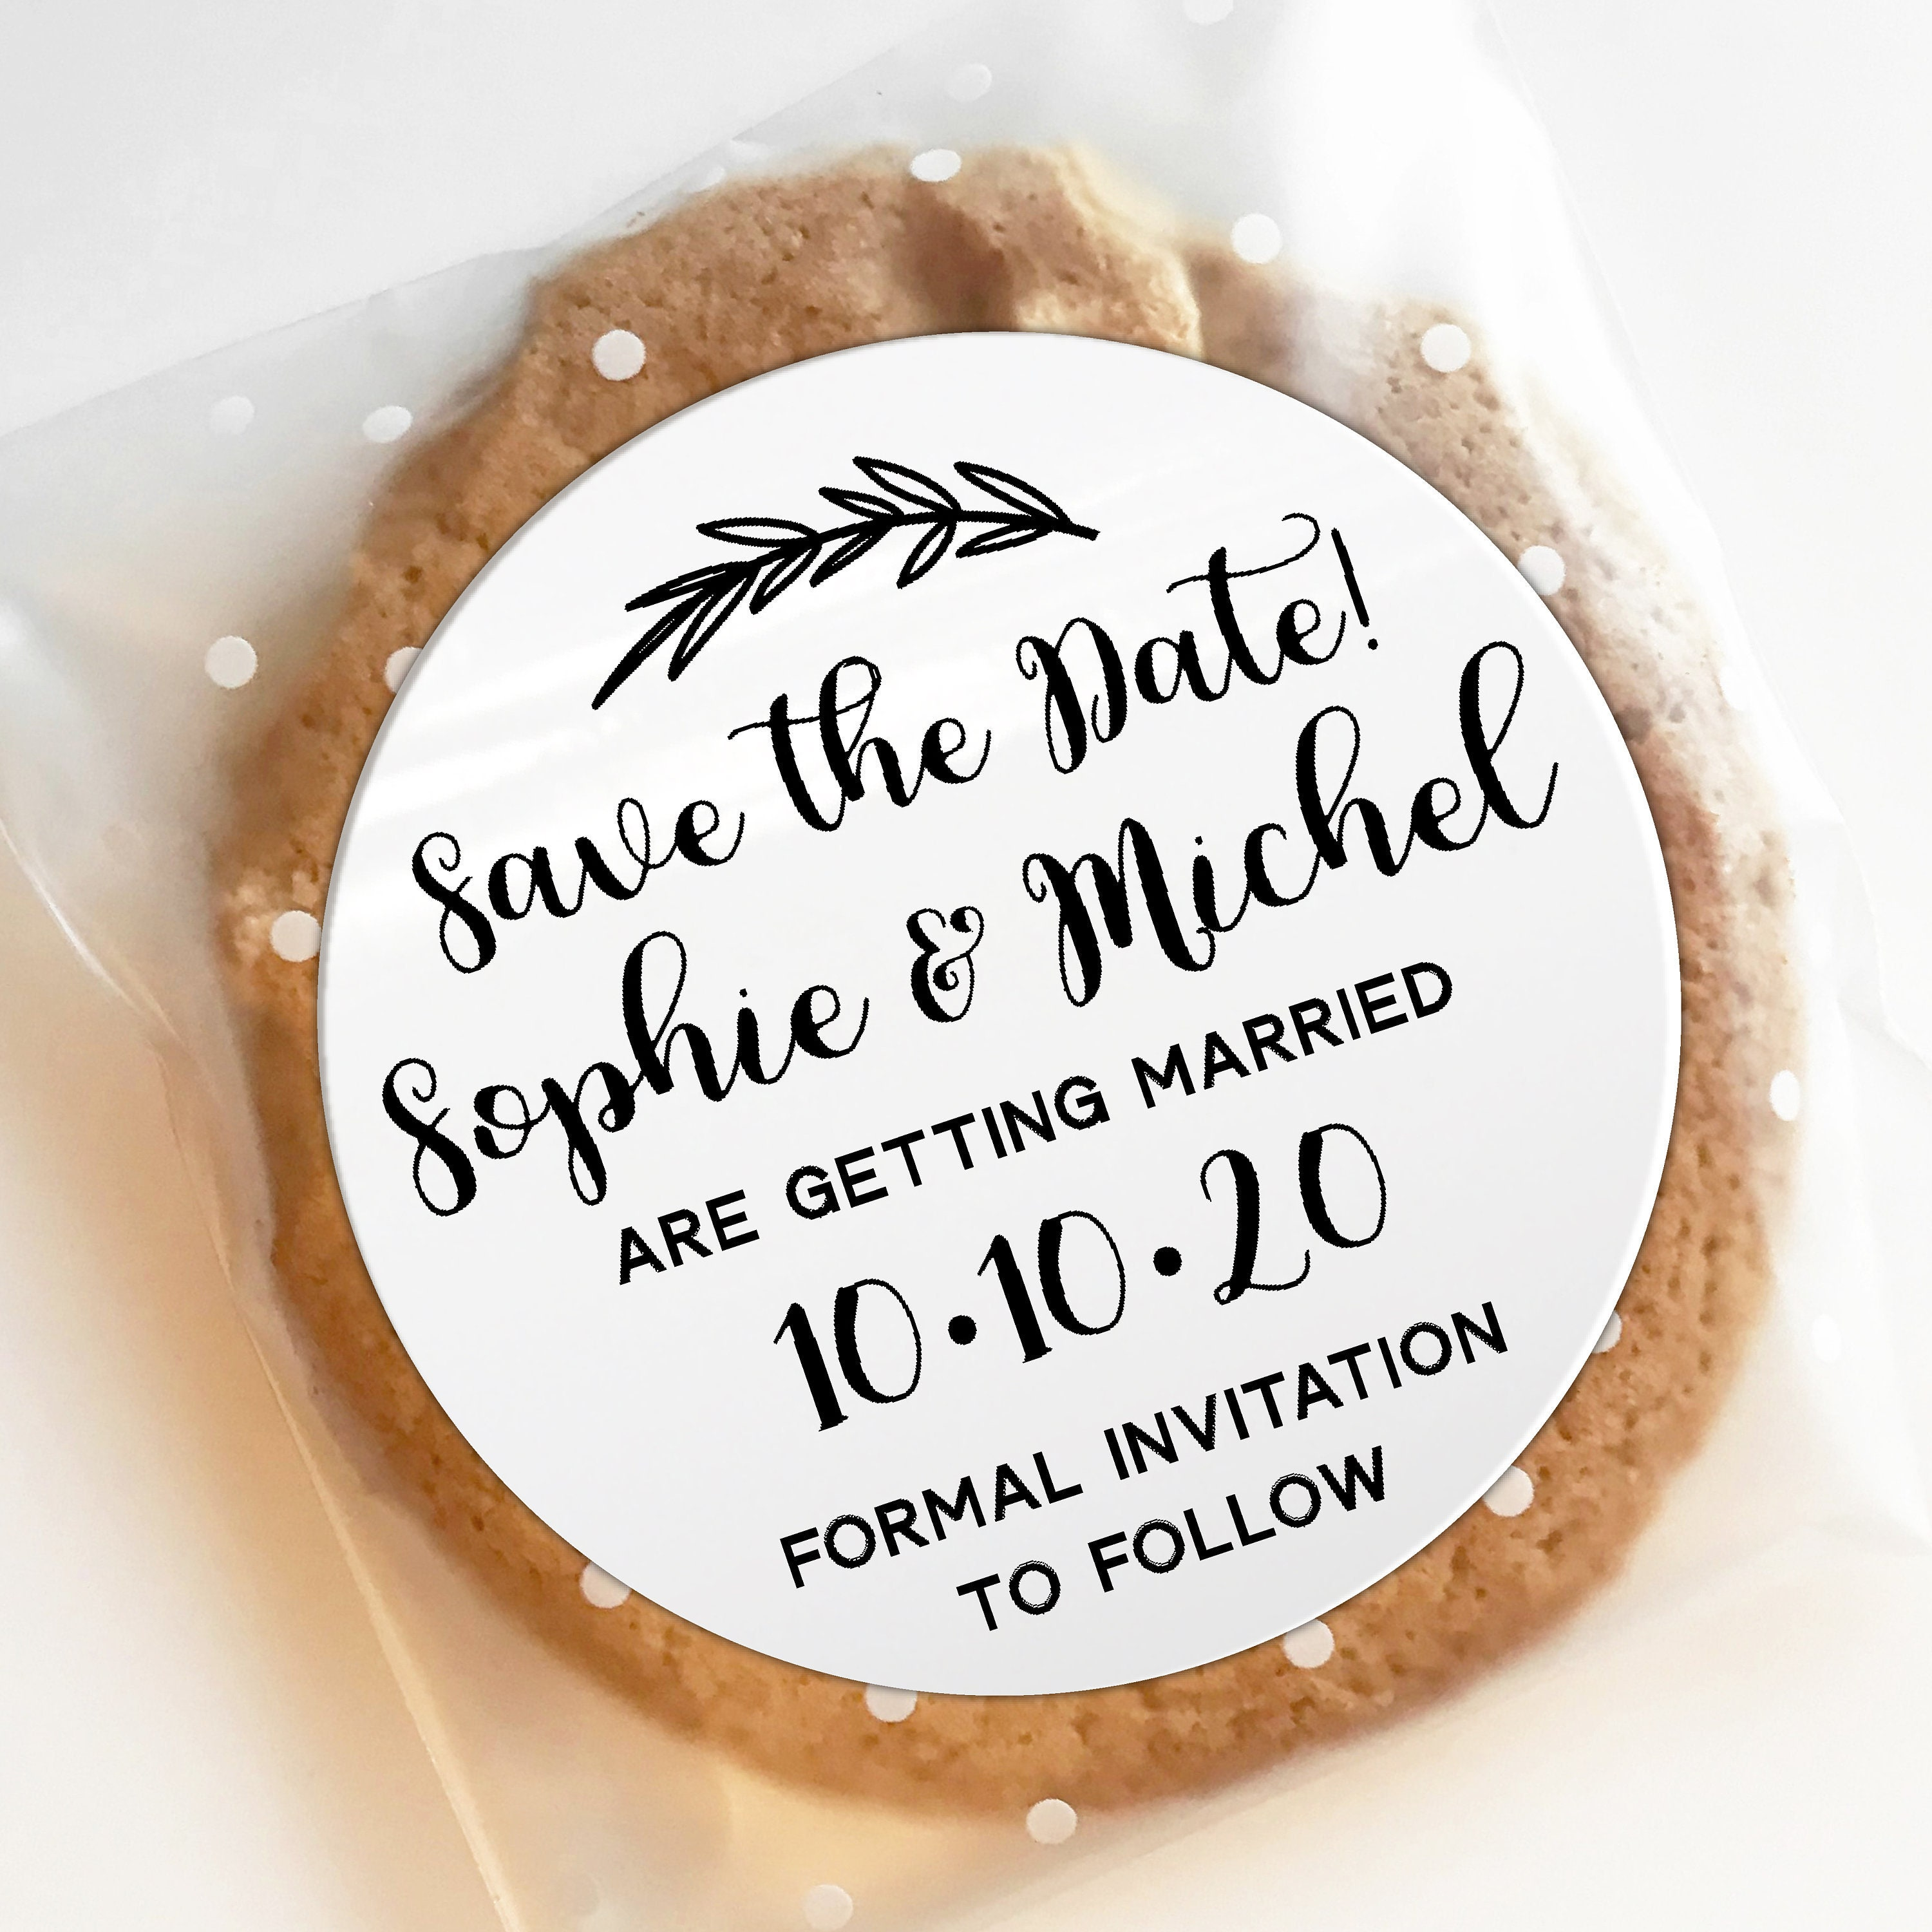 Save the date wedding stickers save the date label tags personalised label stickers round stickers labels save the date ideas